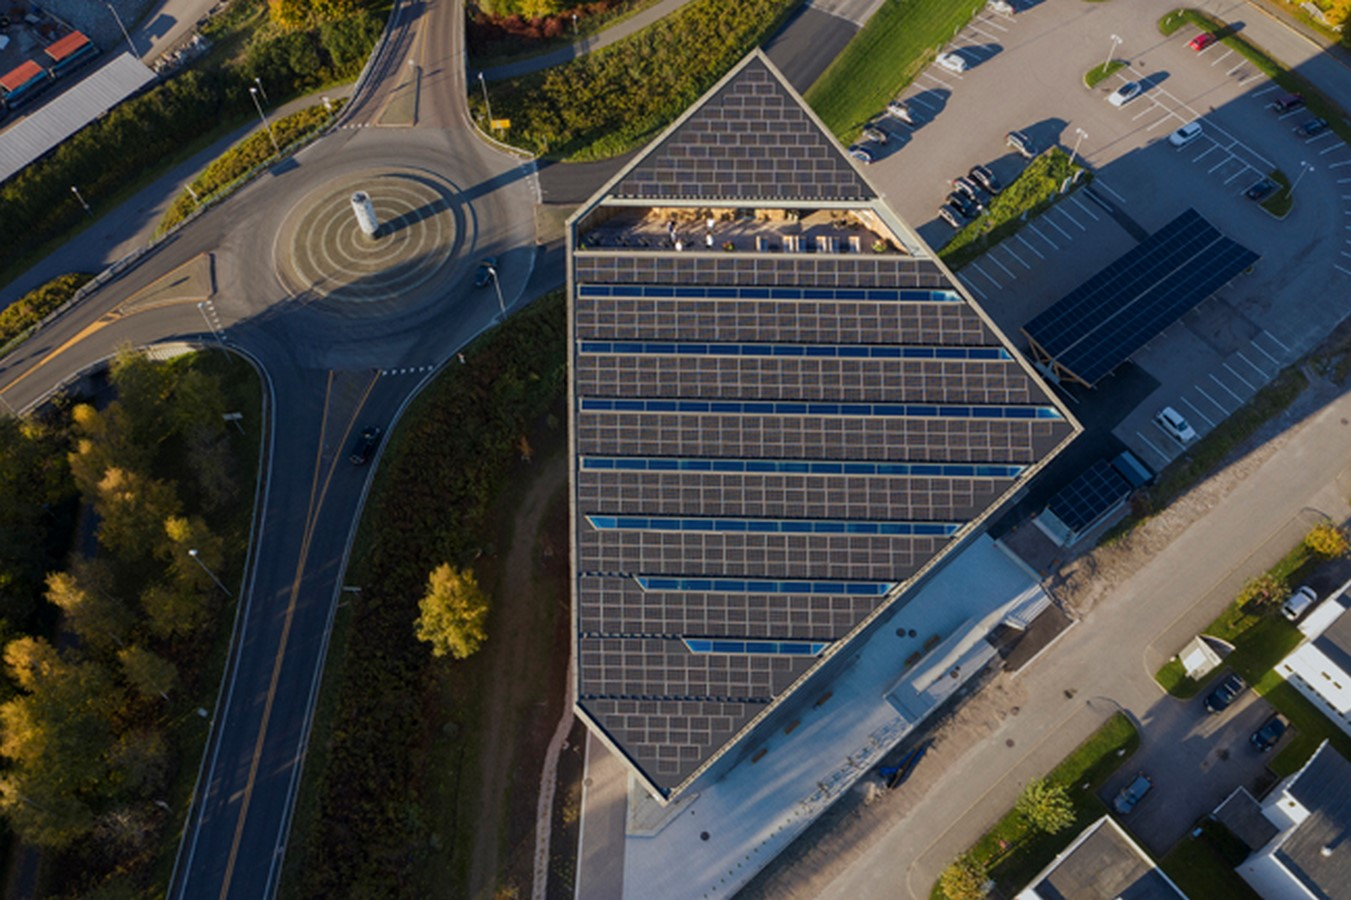 4th Energy Positive Powerhouse In Telemark With Energy Producing Façade And Roof designed by Snøhetta - Sheet7